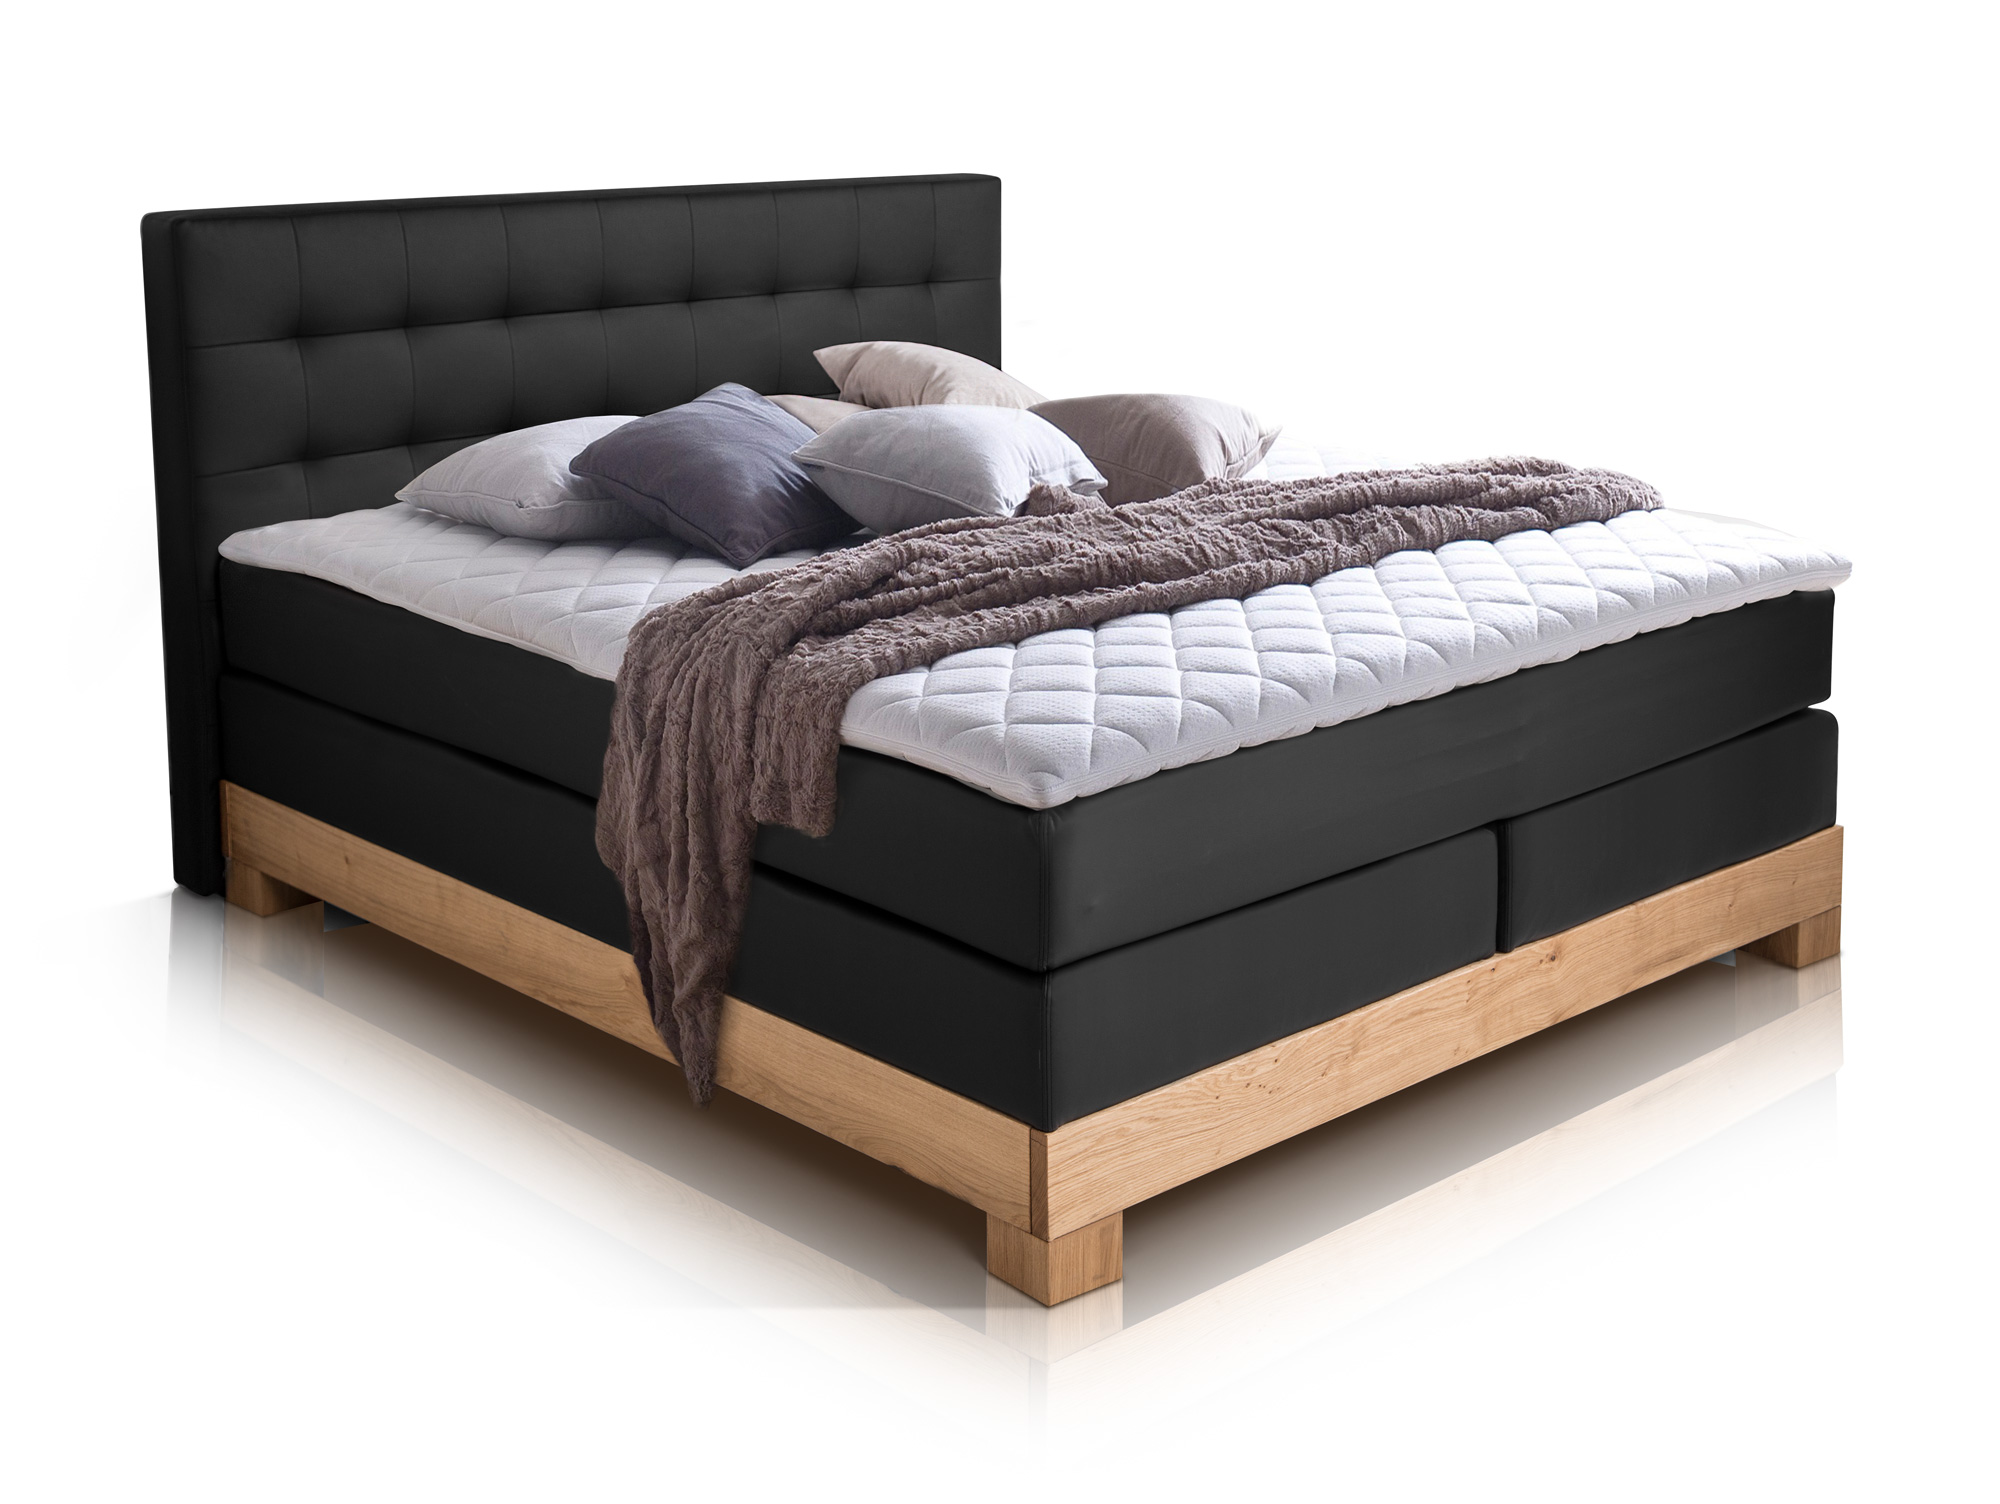 arche boxspringbett mit massivholzrahmen 160 x 200 cm. Black Bedroom Furniture Sets. Home Design Ideas